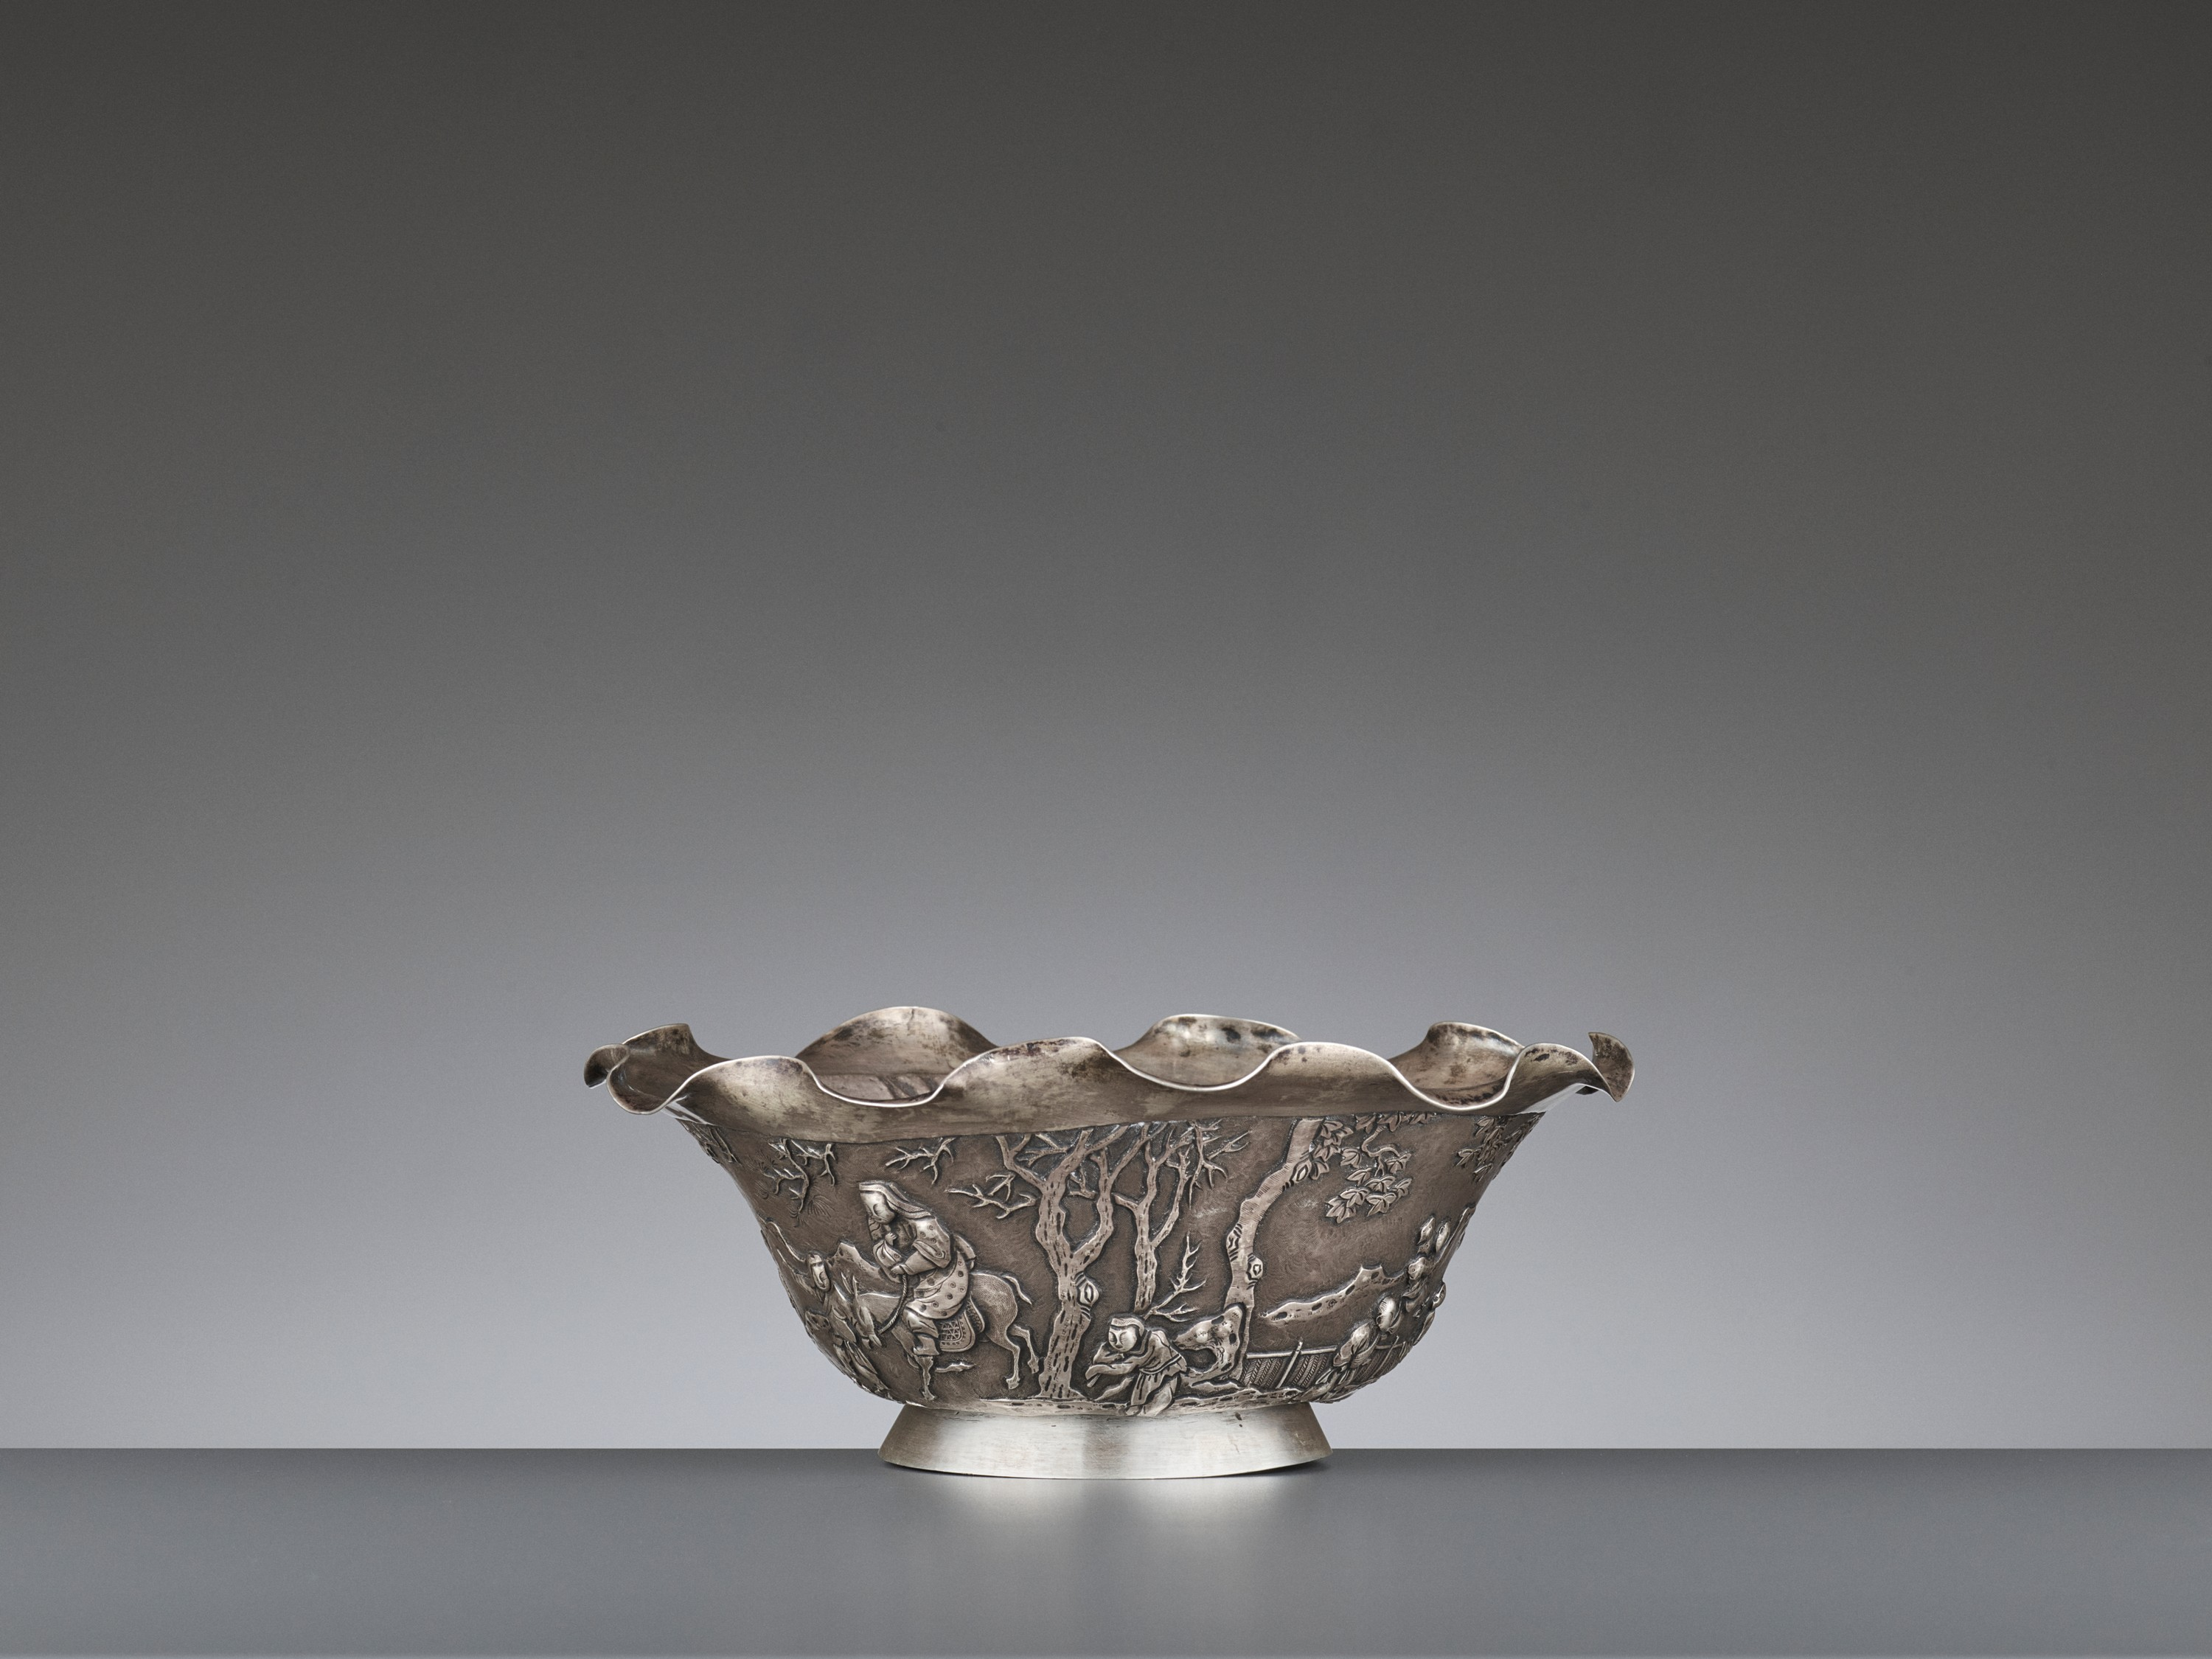 A SILVER REPOUSSE 'WEIQI PLAYERS' BOWL BY KWONG MAN SHING - Image 5 of 9